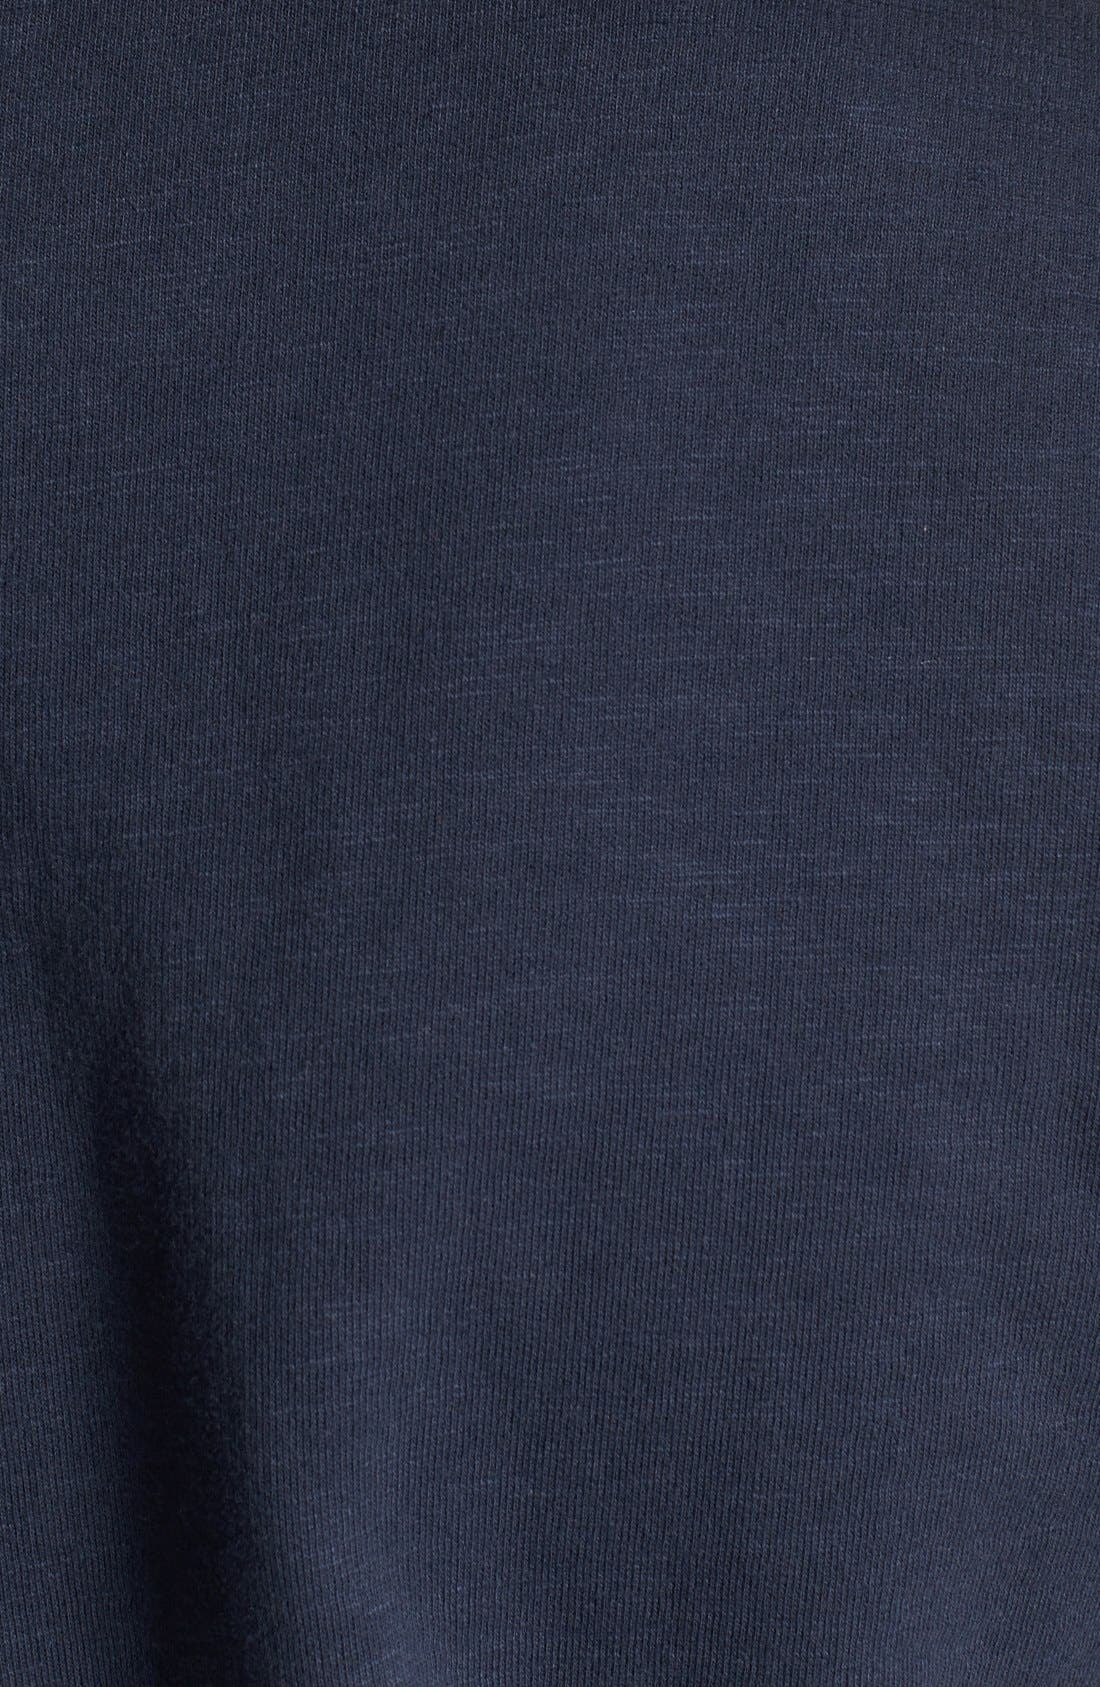 Alternate Image 3  - Jack Spade 'Connors' Pullover Sweatshirt